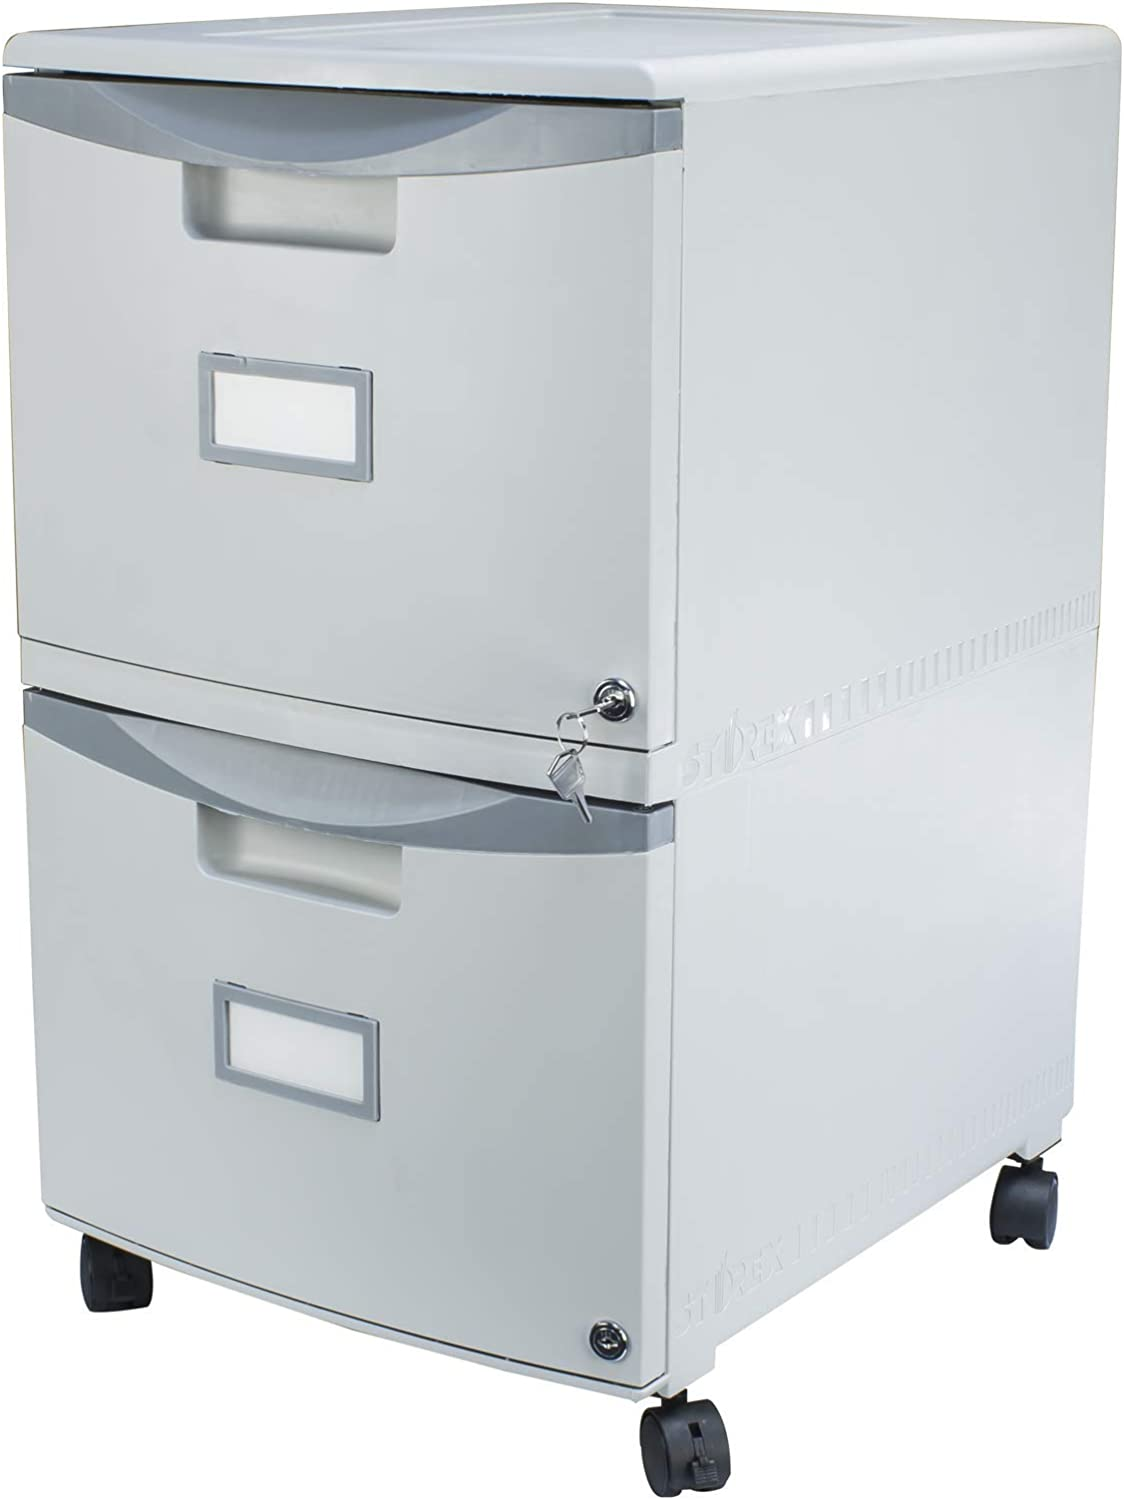 Storex Plastic 2-Drawer Mobile File Cabinet, All-Steel Lock and Key, Gray